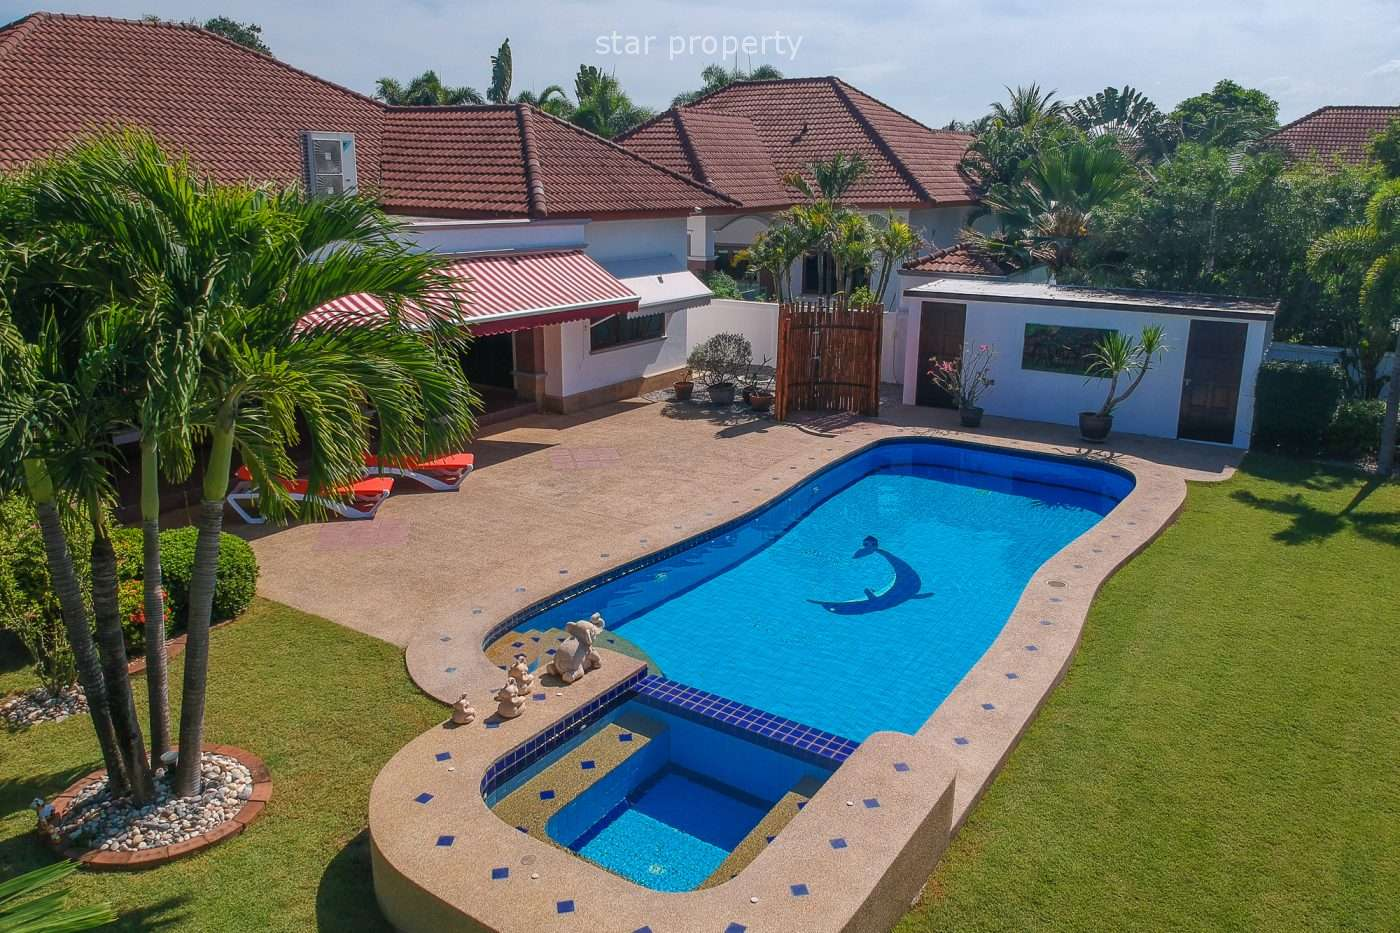 3 Bedrooms Pool Villa on large land for Sale in Hua Hin Soi 70